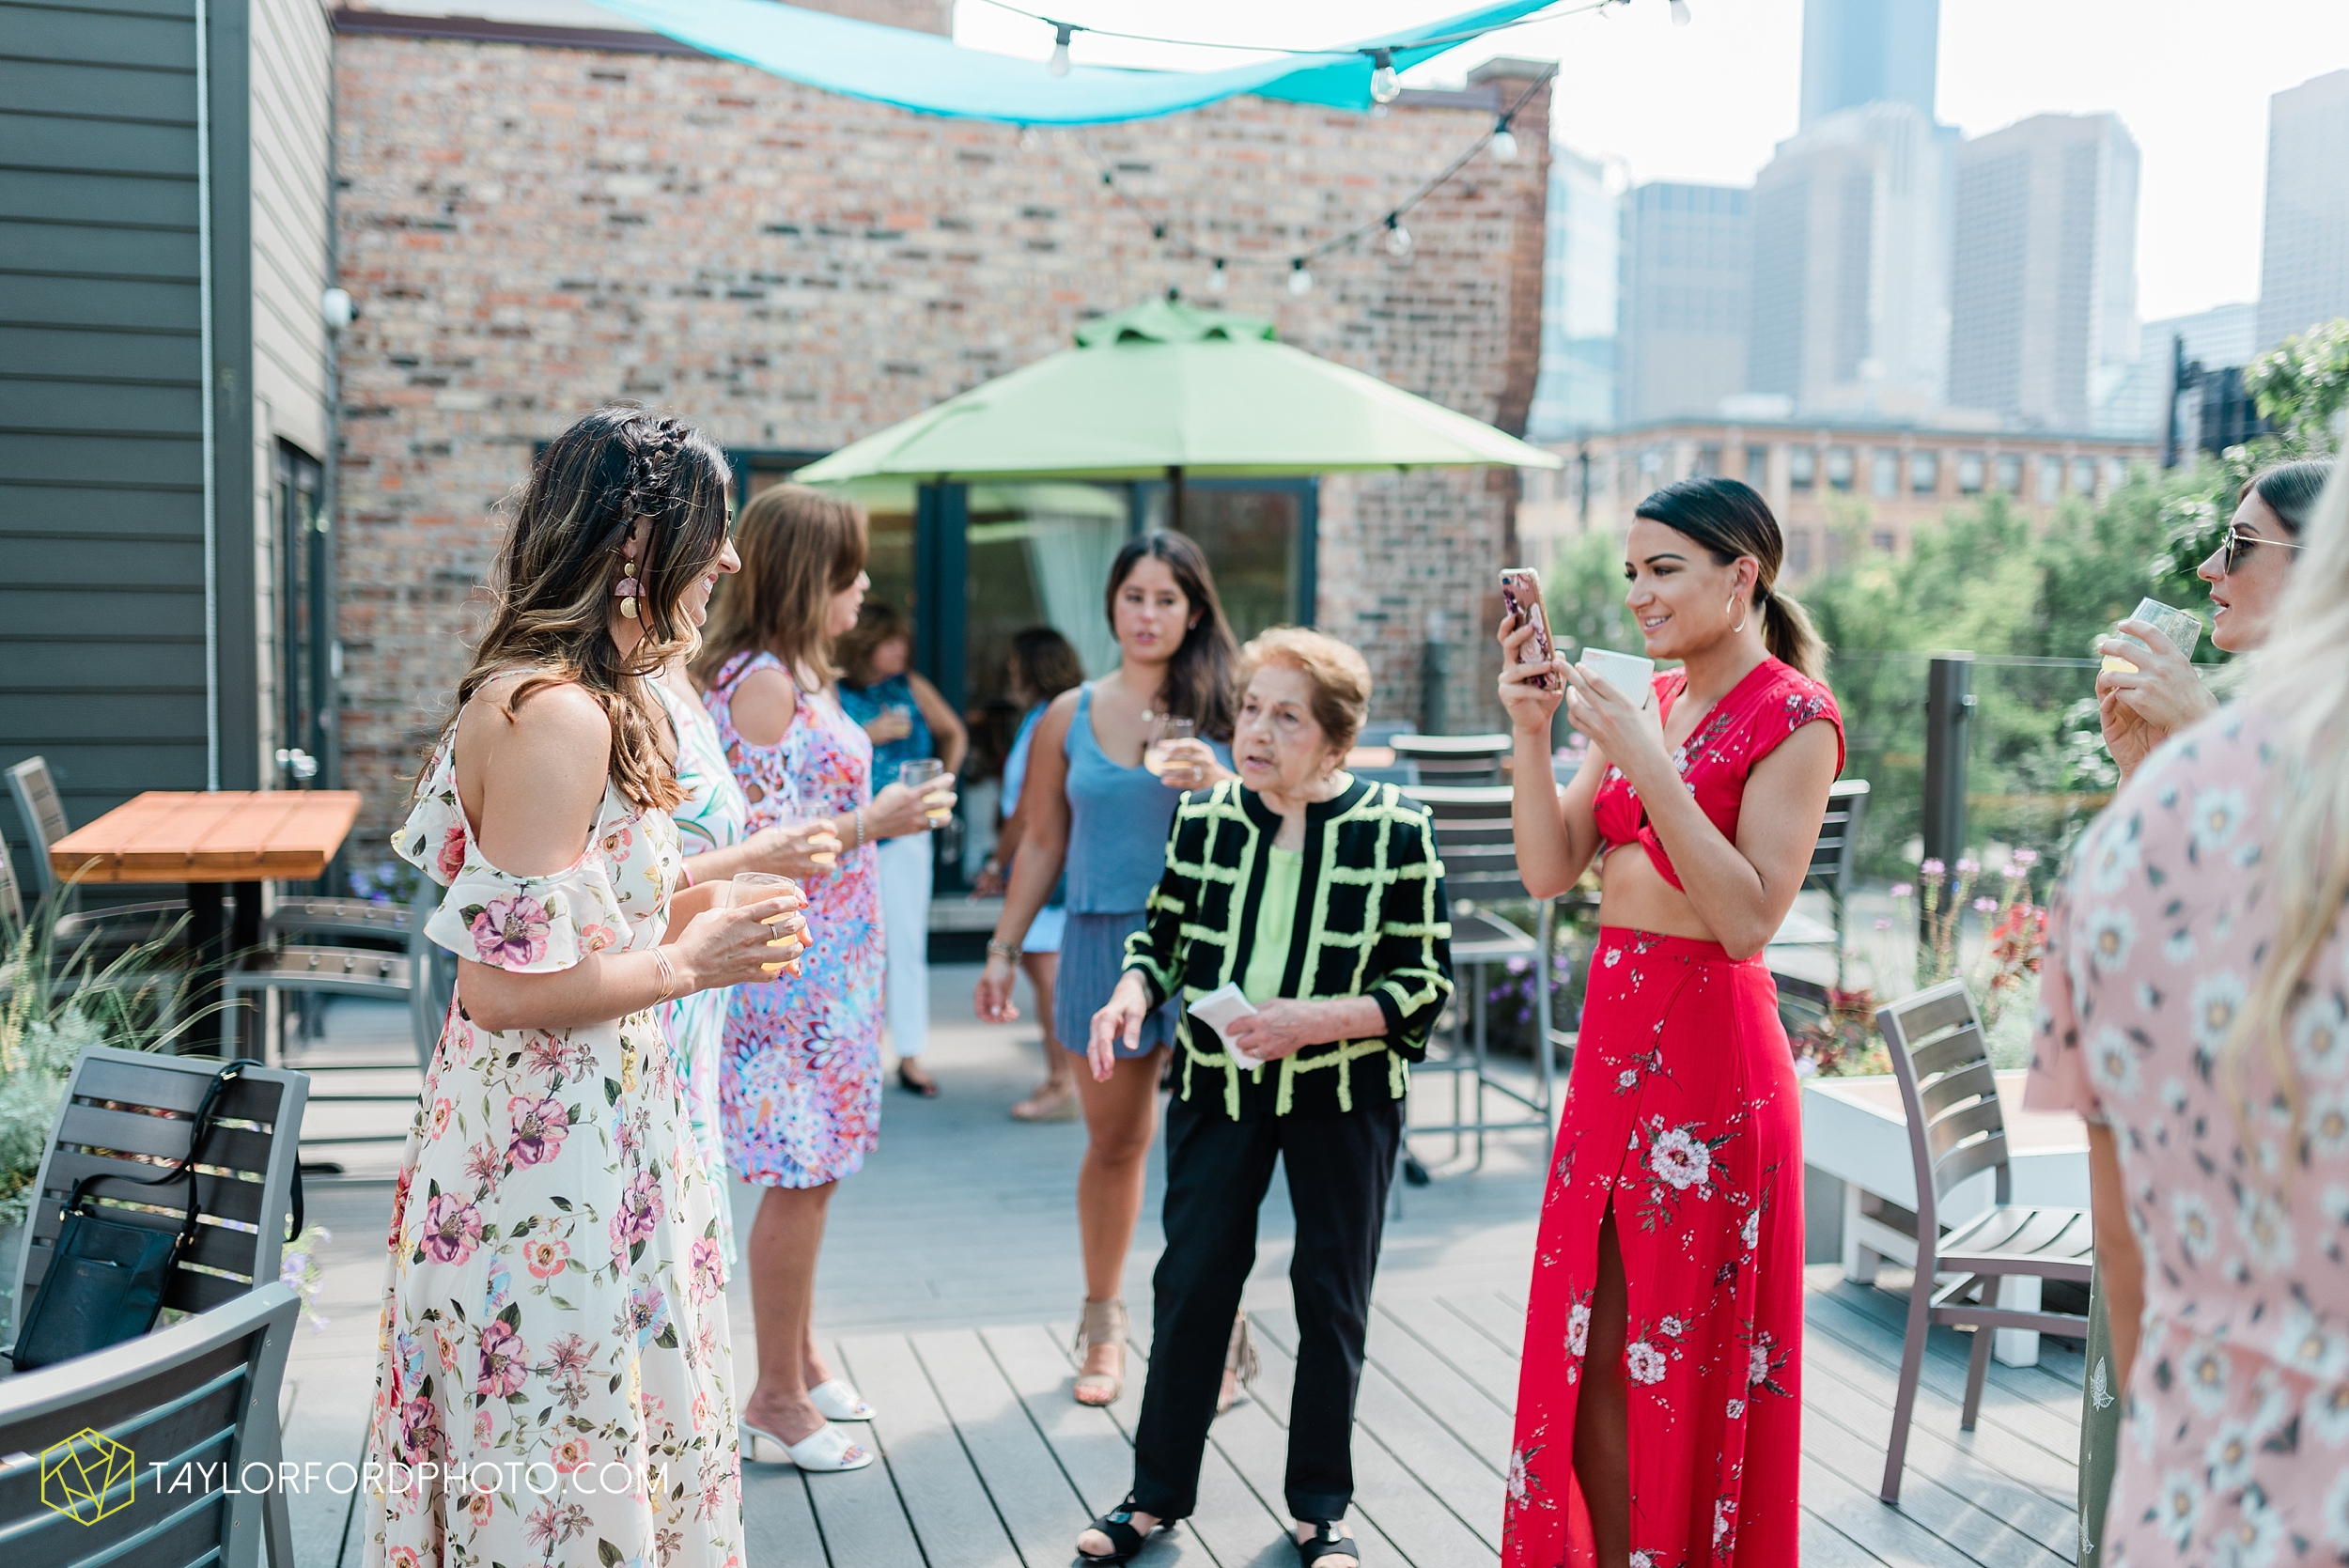 chicago-illinois-bridal-shower-little-goat-diner-west-loop-wedding-photographer-taylor-ford-photographer_8813.jpg